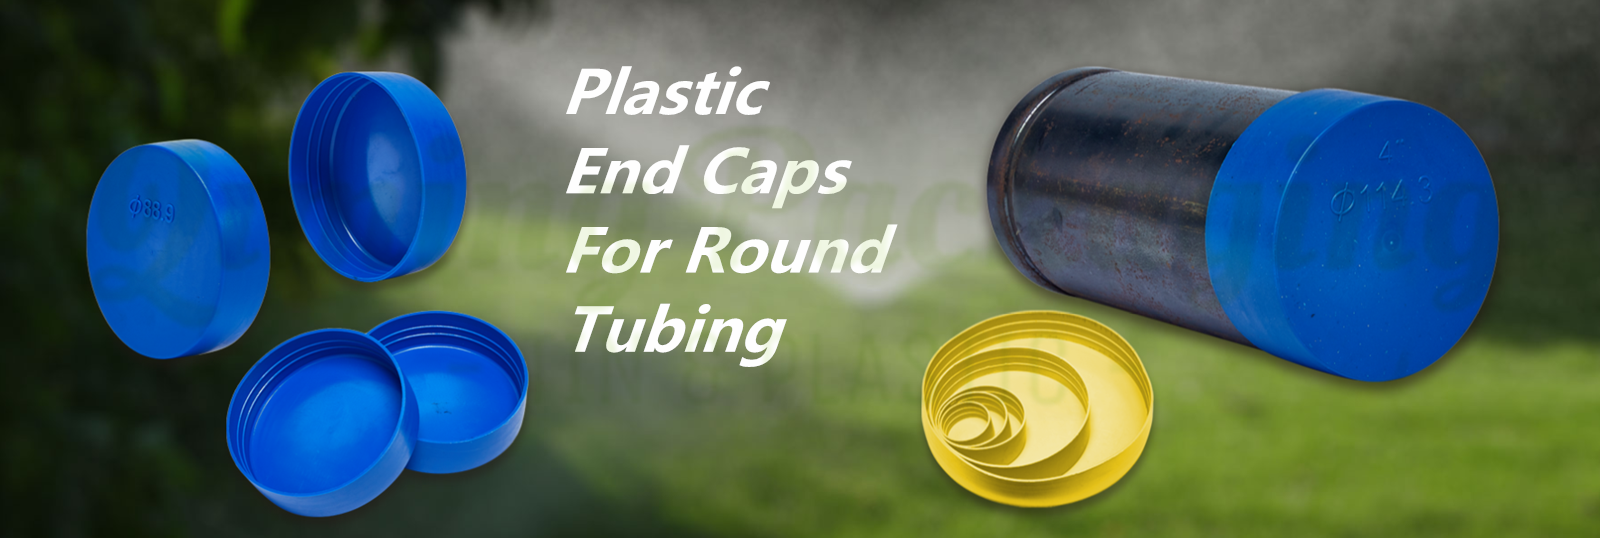 plastic end caps for round tubing